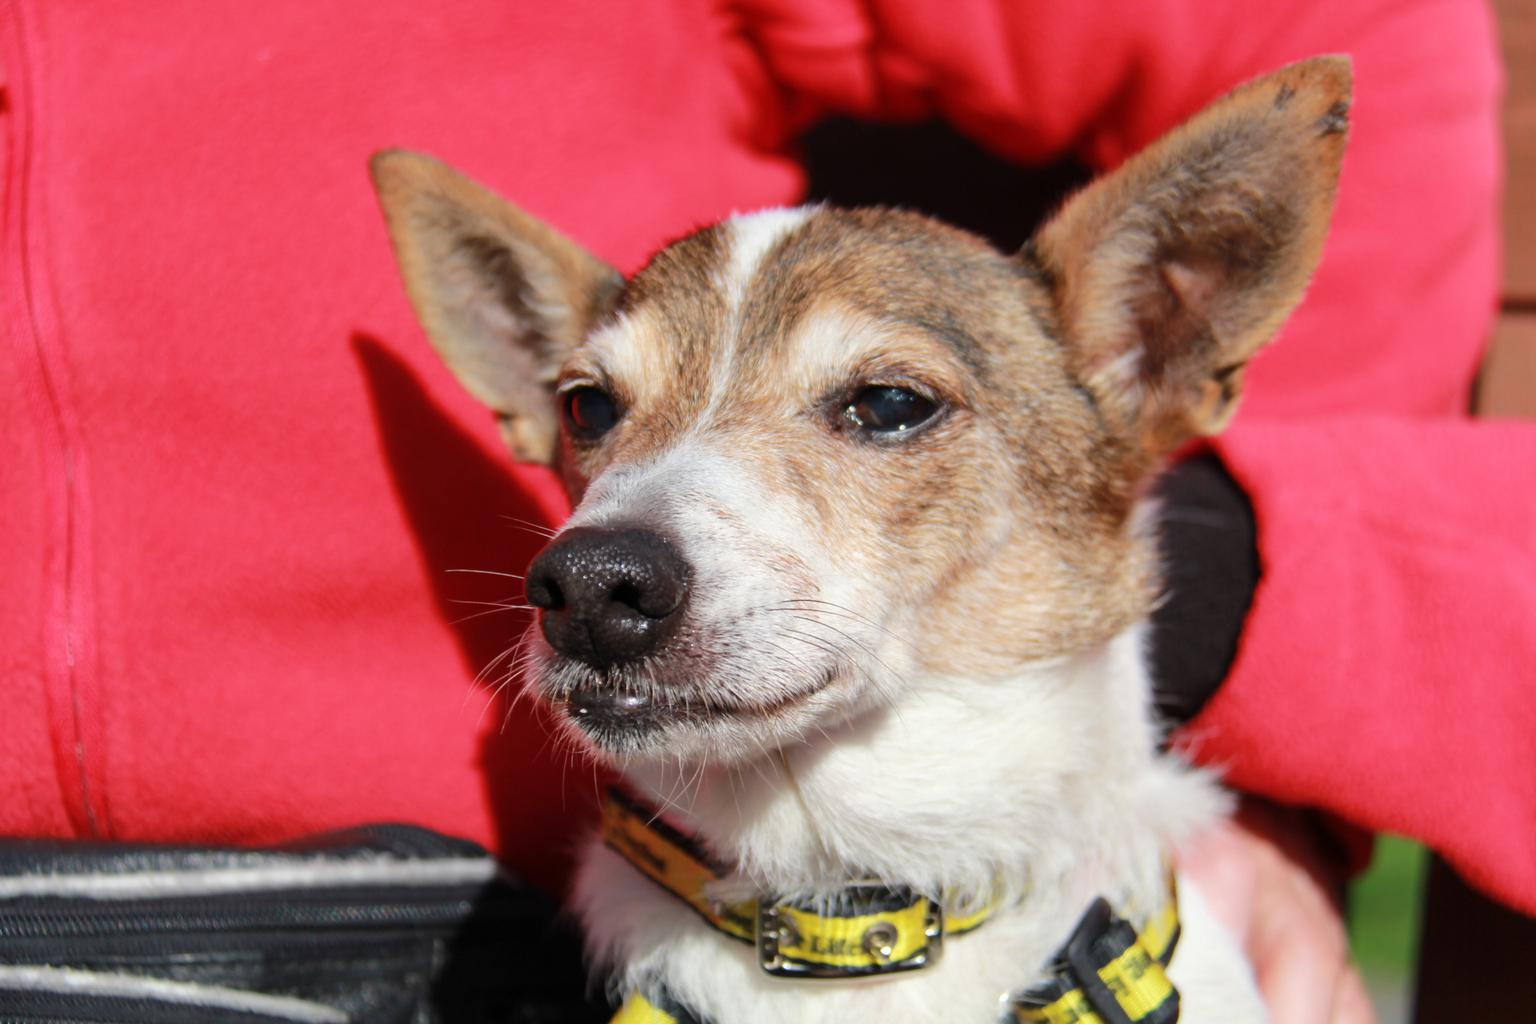 17 year old Bobby has his sights set on a new home. Tags: Dogs Trust Jack  Russell Terrier oldest dog rescue dog